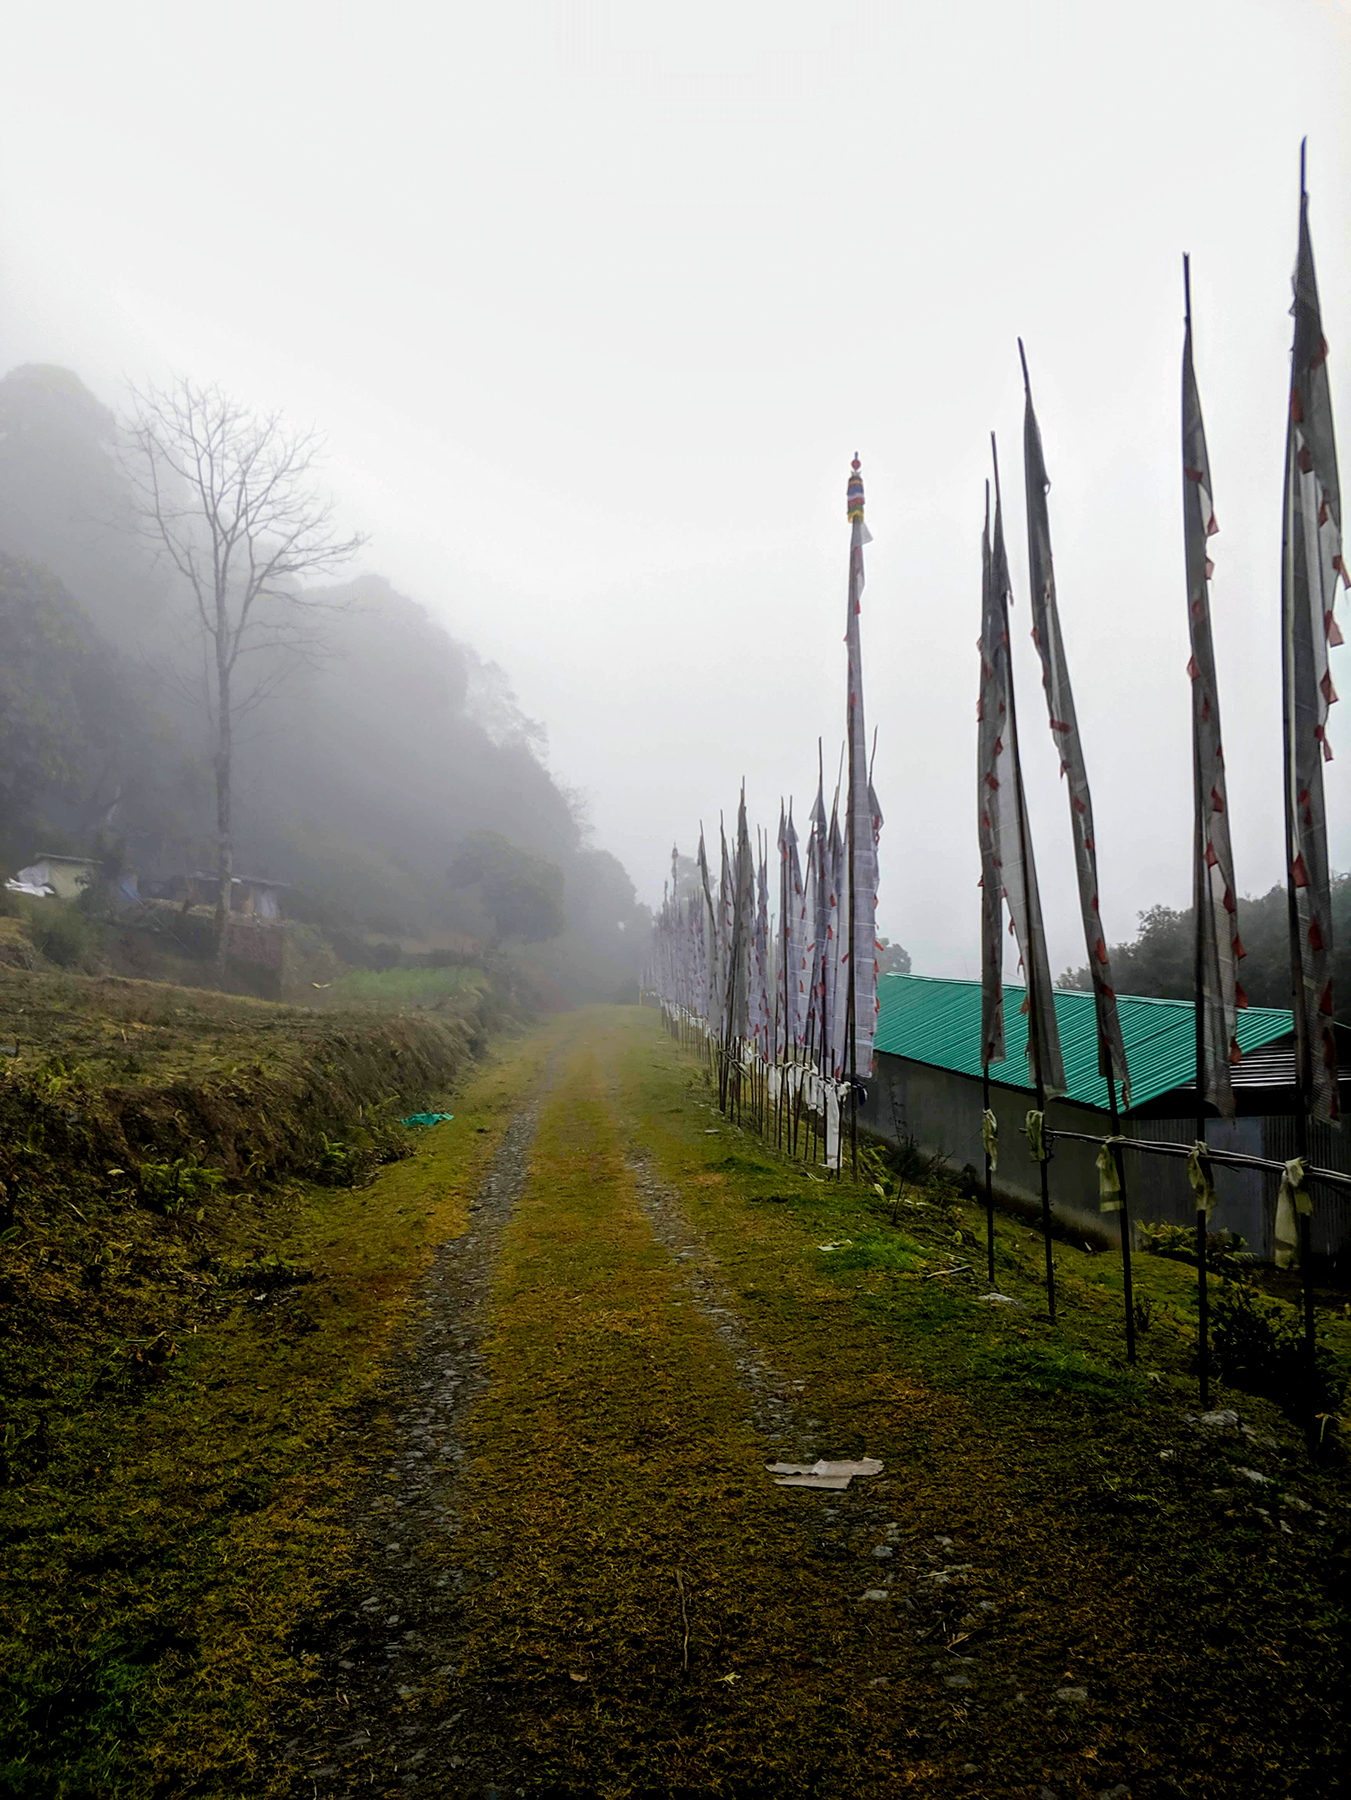 Fog before the rain on our way to Pemayangtse Monastery